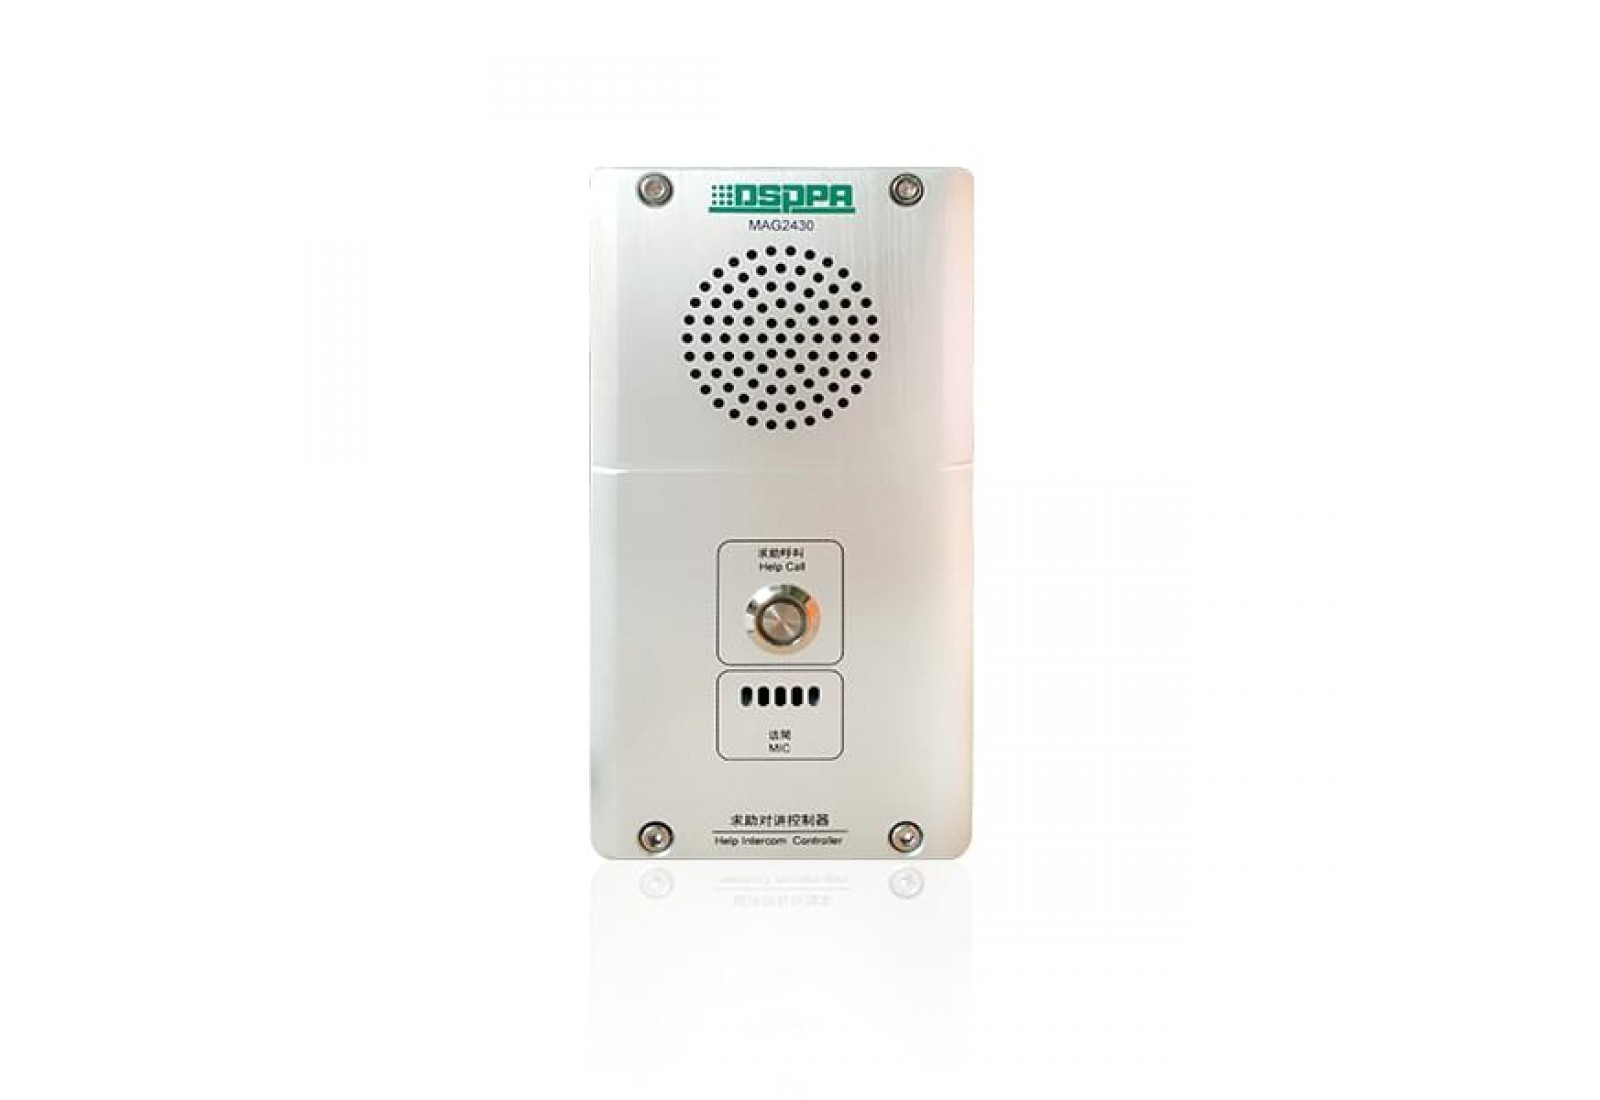 DSPPA MAG2430 Help Intercom Extended Controller